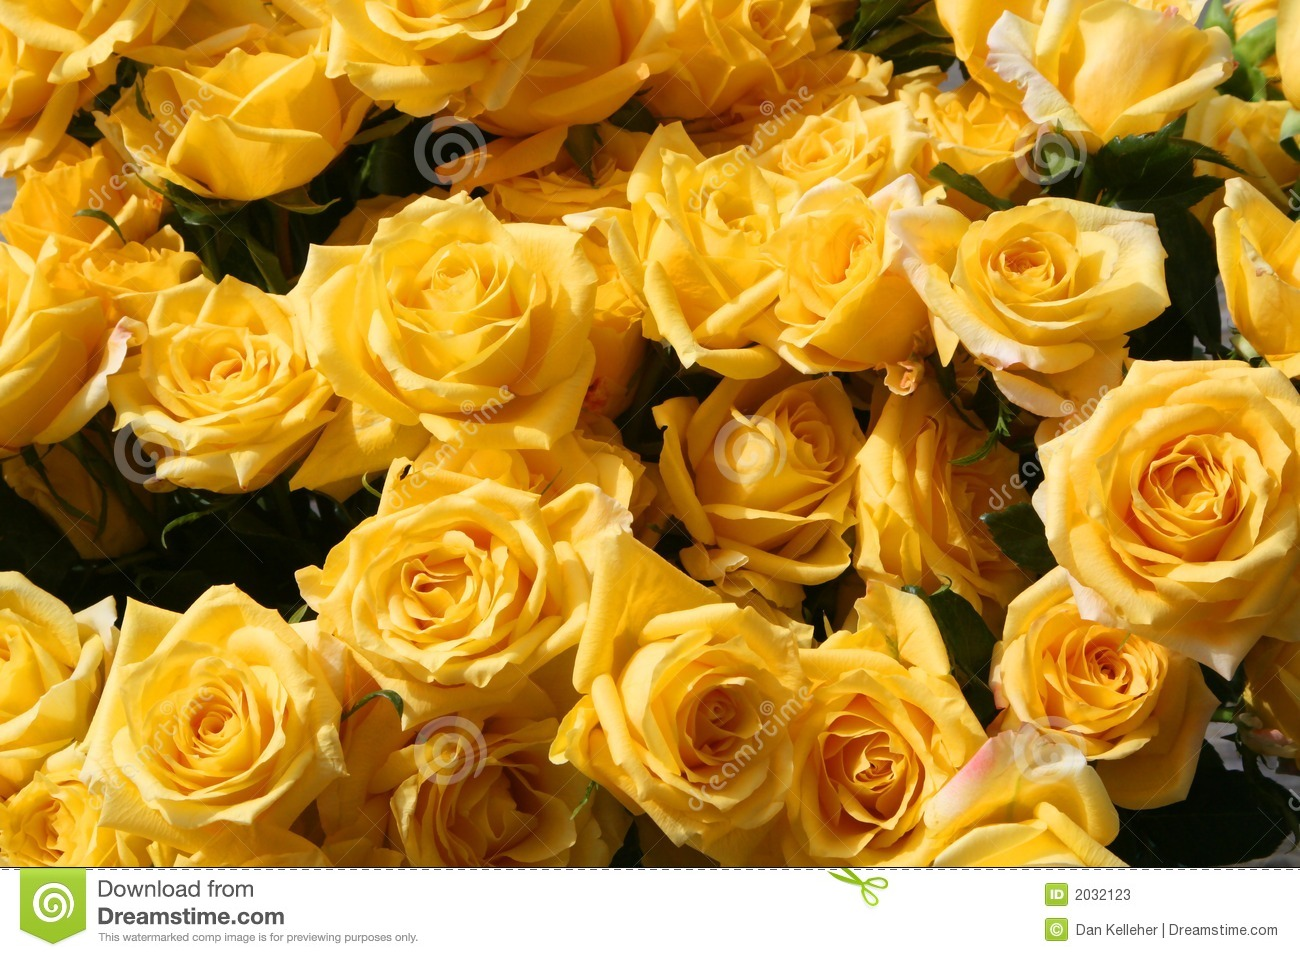 Rose Goud Gold Strike Roses Stock Image. Image Of Flowers, Yellow